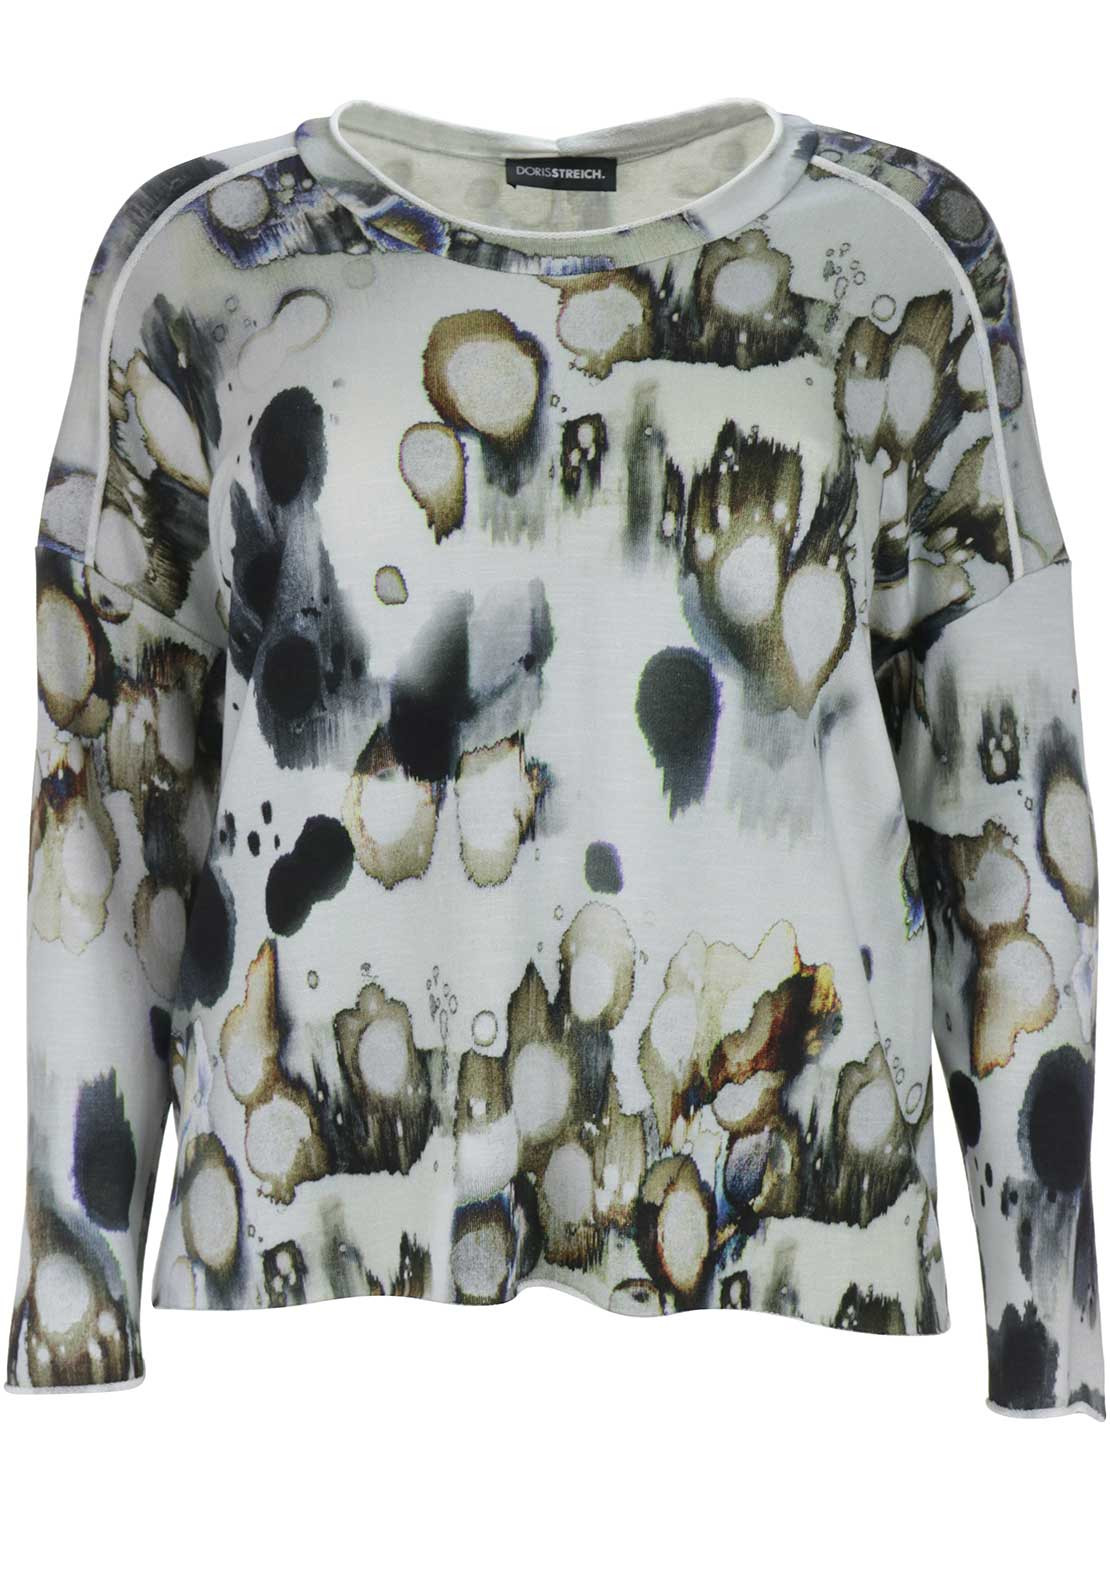 Doris Streich Abstract Print Jumper, Grey Multi